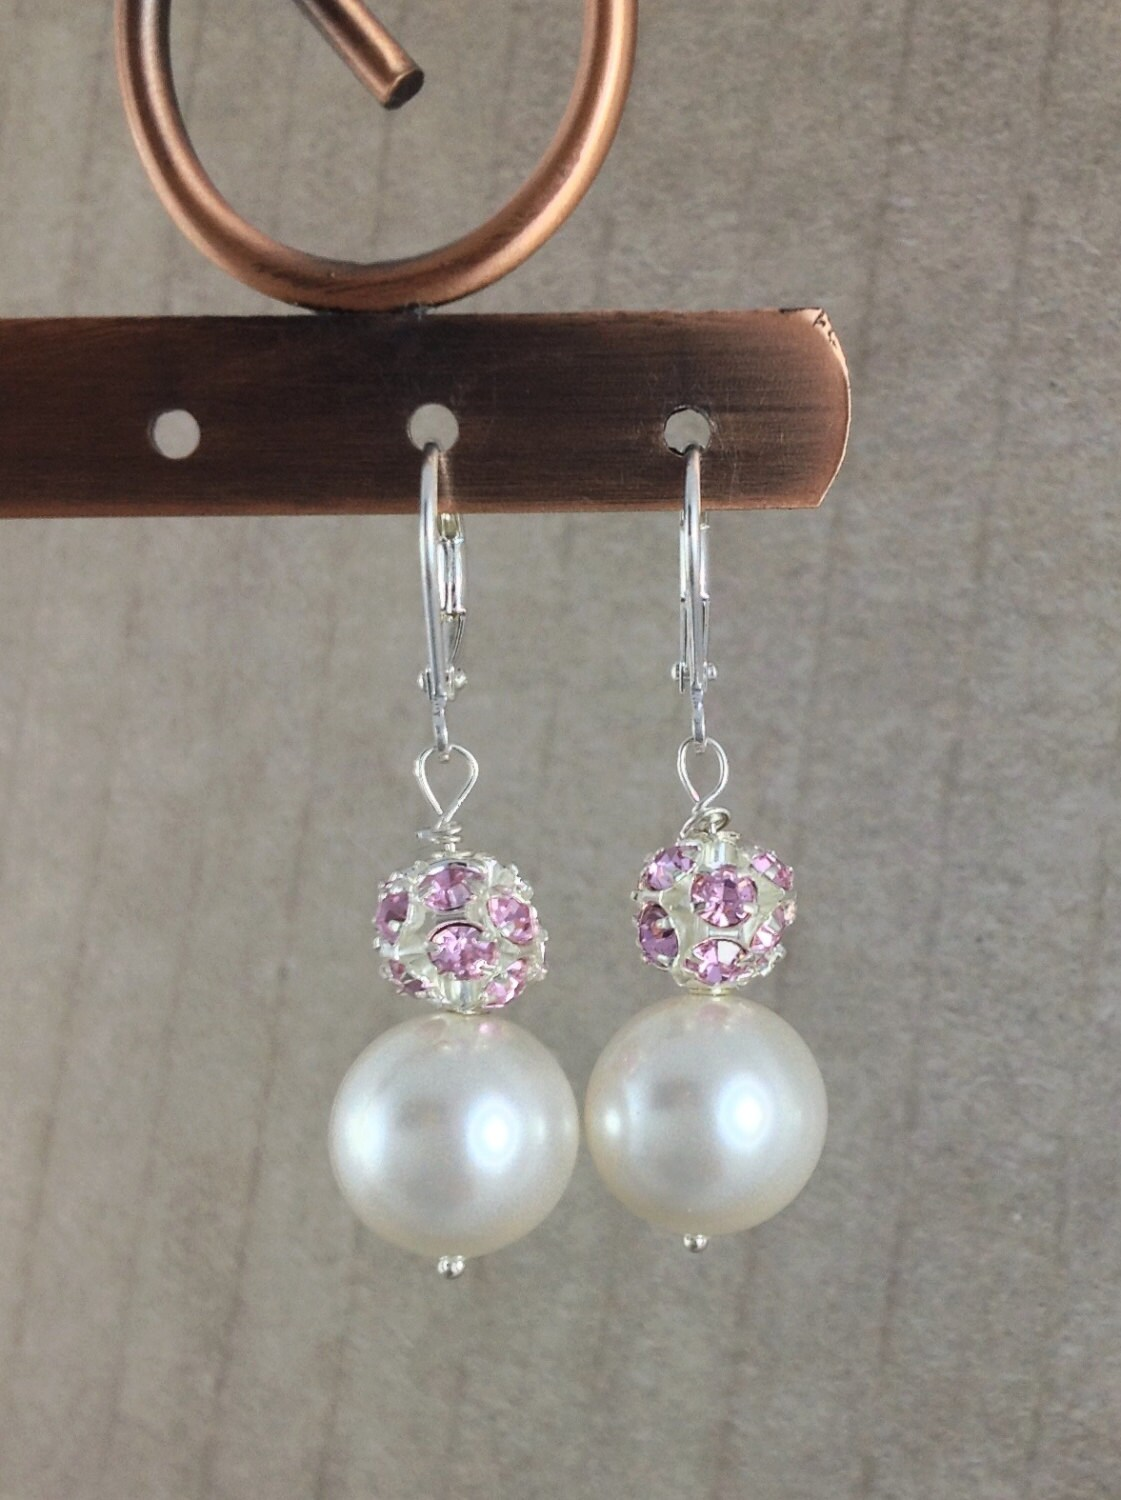 White pearl and pink rhinestone earrings on silver leverback. Handmade white Swarovski pearl earrings with pink Egyptian crystal rhinestones - GemsByKelley